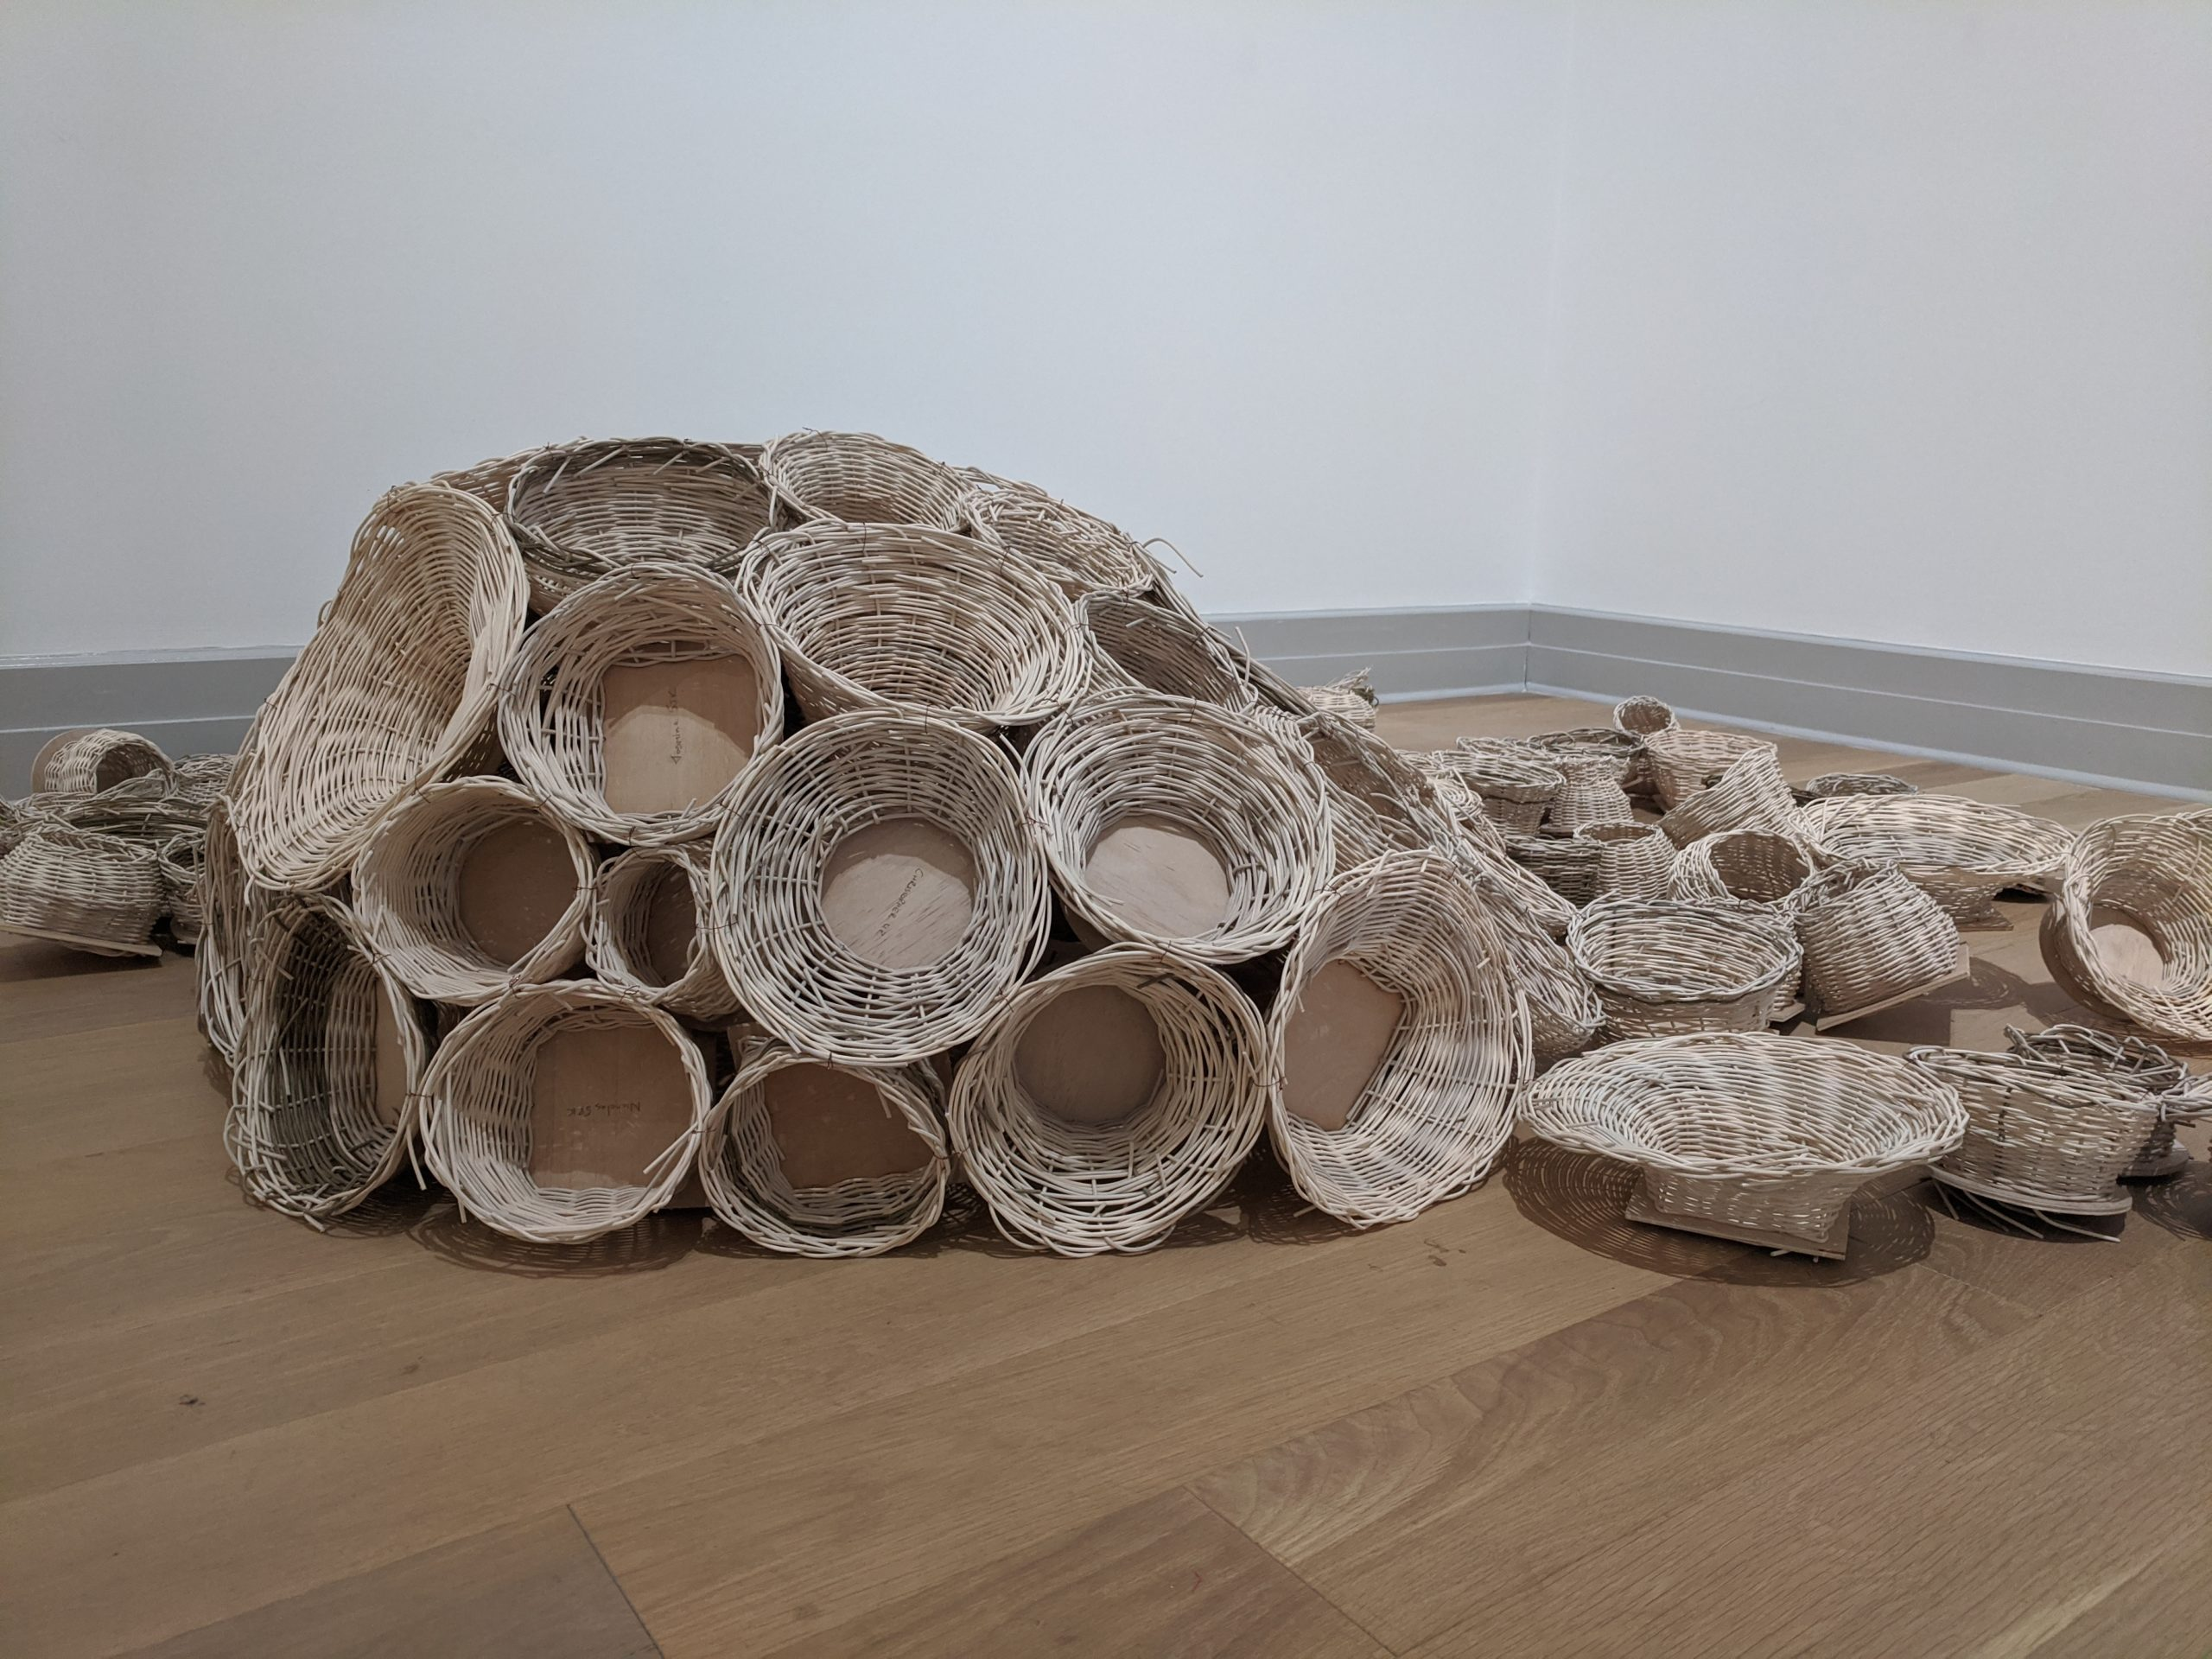 The 150 fourth and fifth graders in Gary Osborne's art classes at Sag Harbor Elementary School used the theme of water to hand-weave baskets from reeds soaked in water. The baskets are assembled in the shape of an octopus in the galleries at Guild Hall.